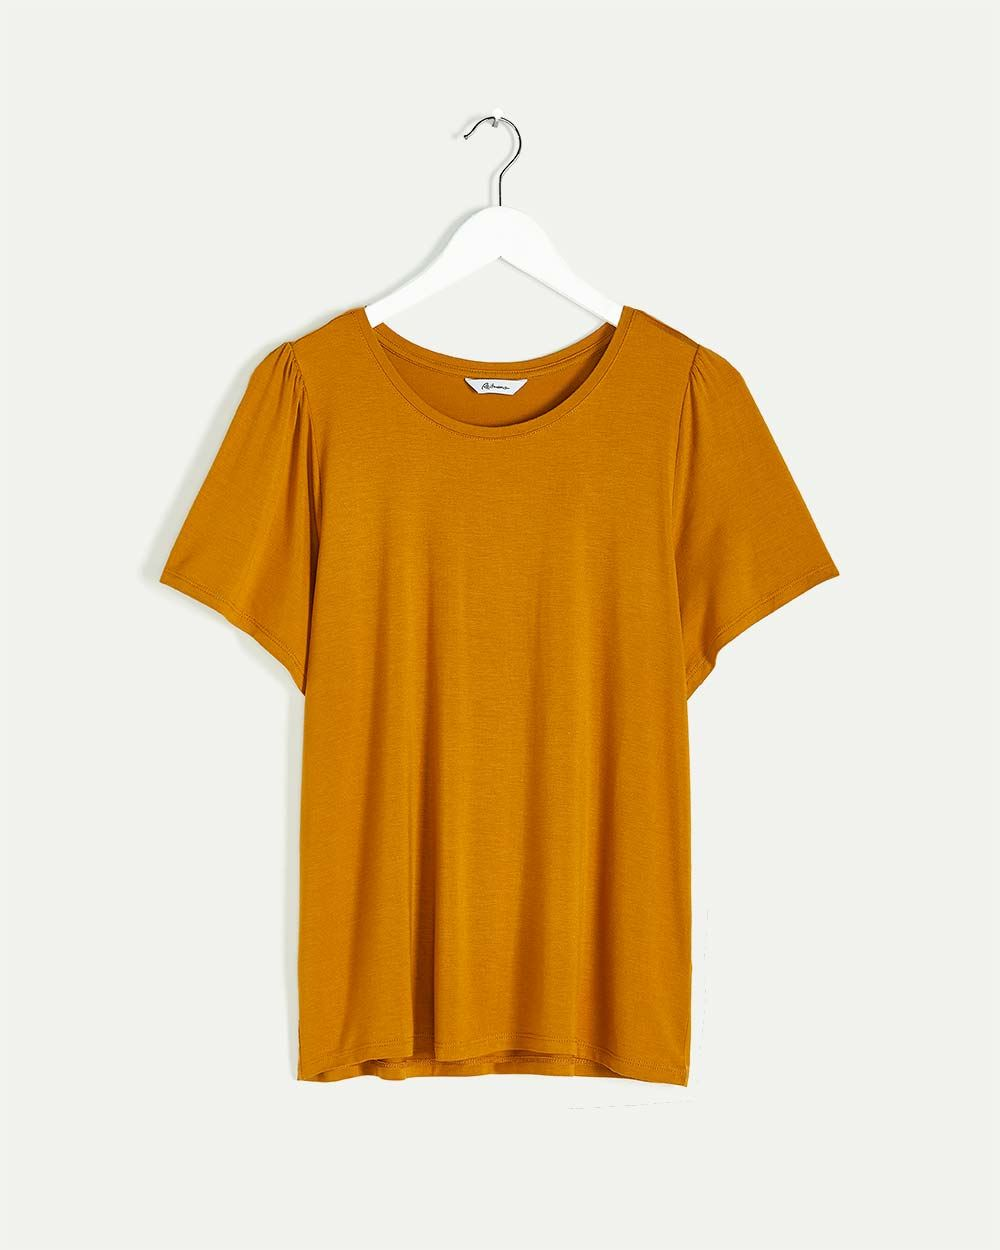 Short Sleeve Tee with Shirring at Shoulders